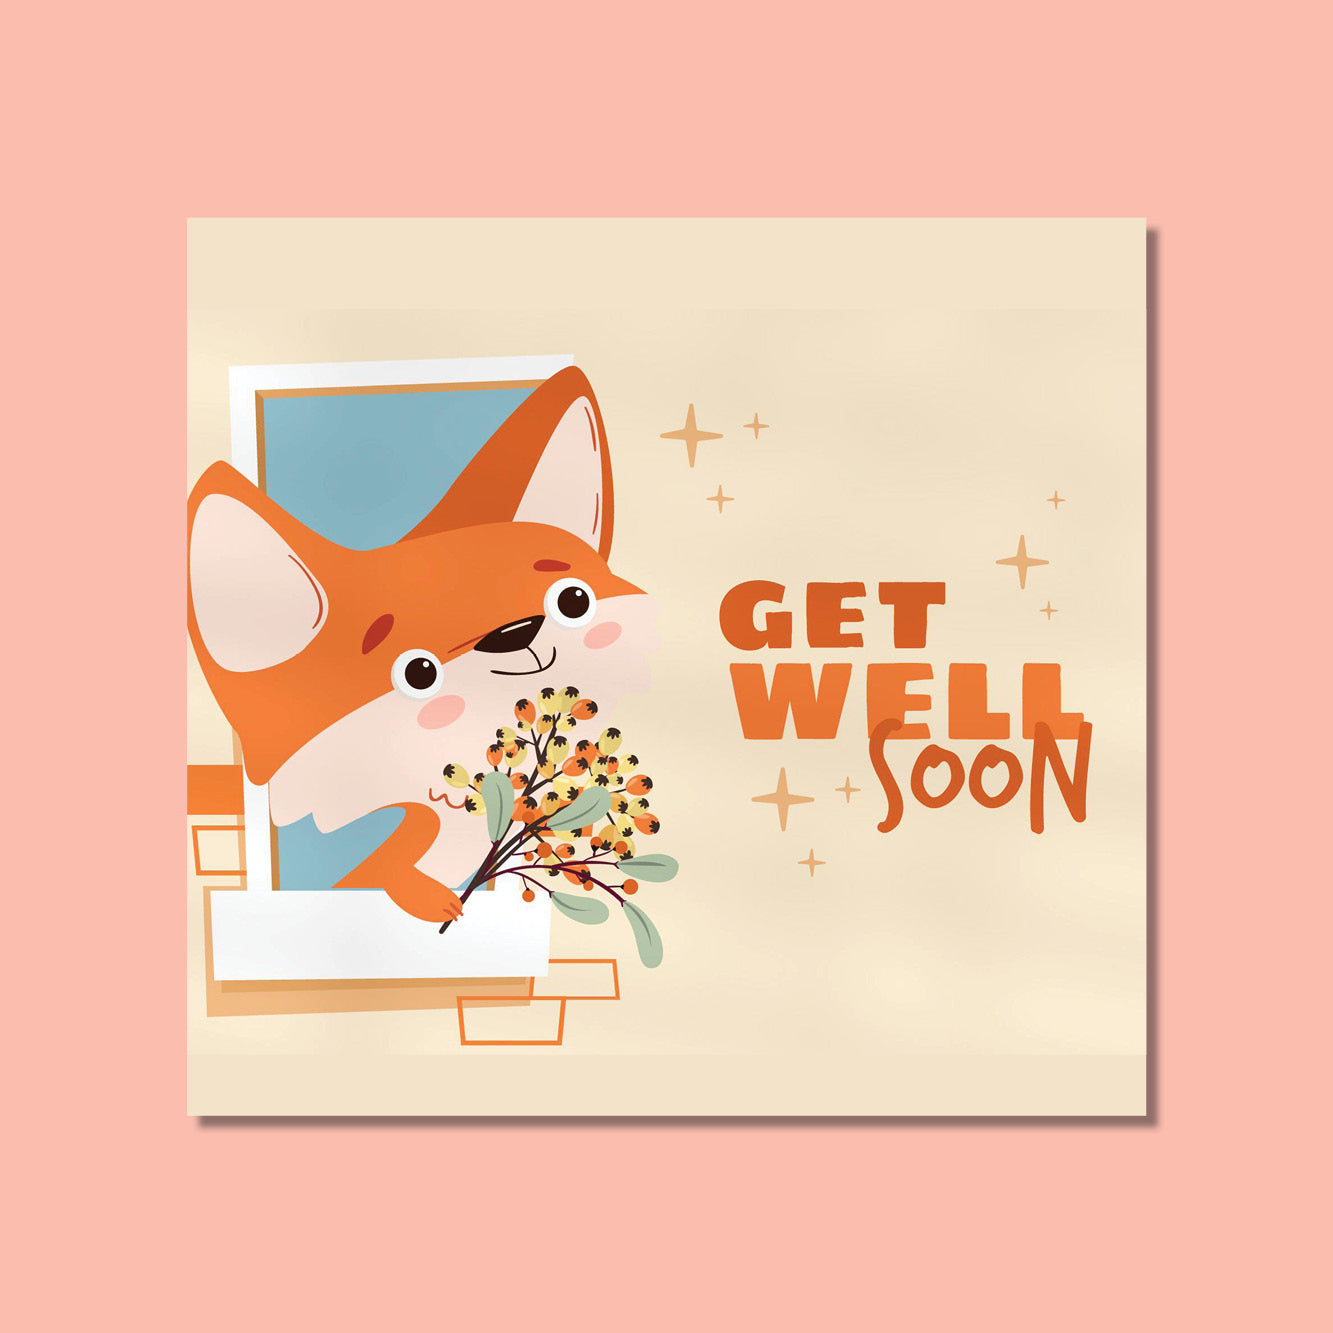 Get Well Soon - Cute Fox